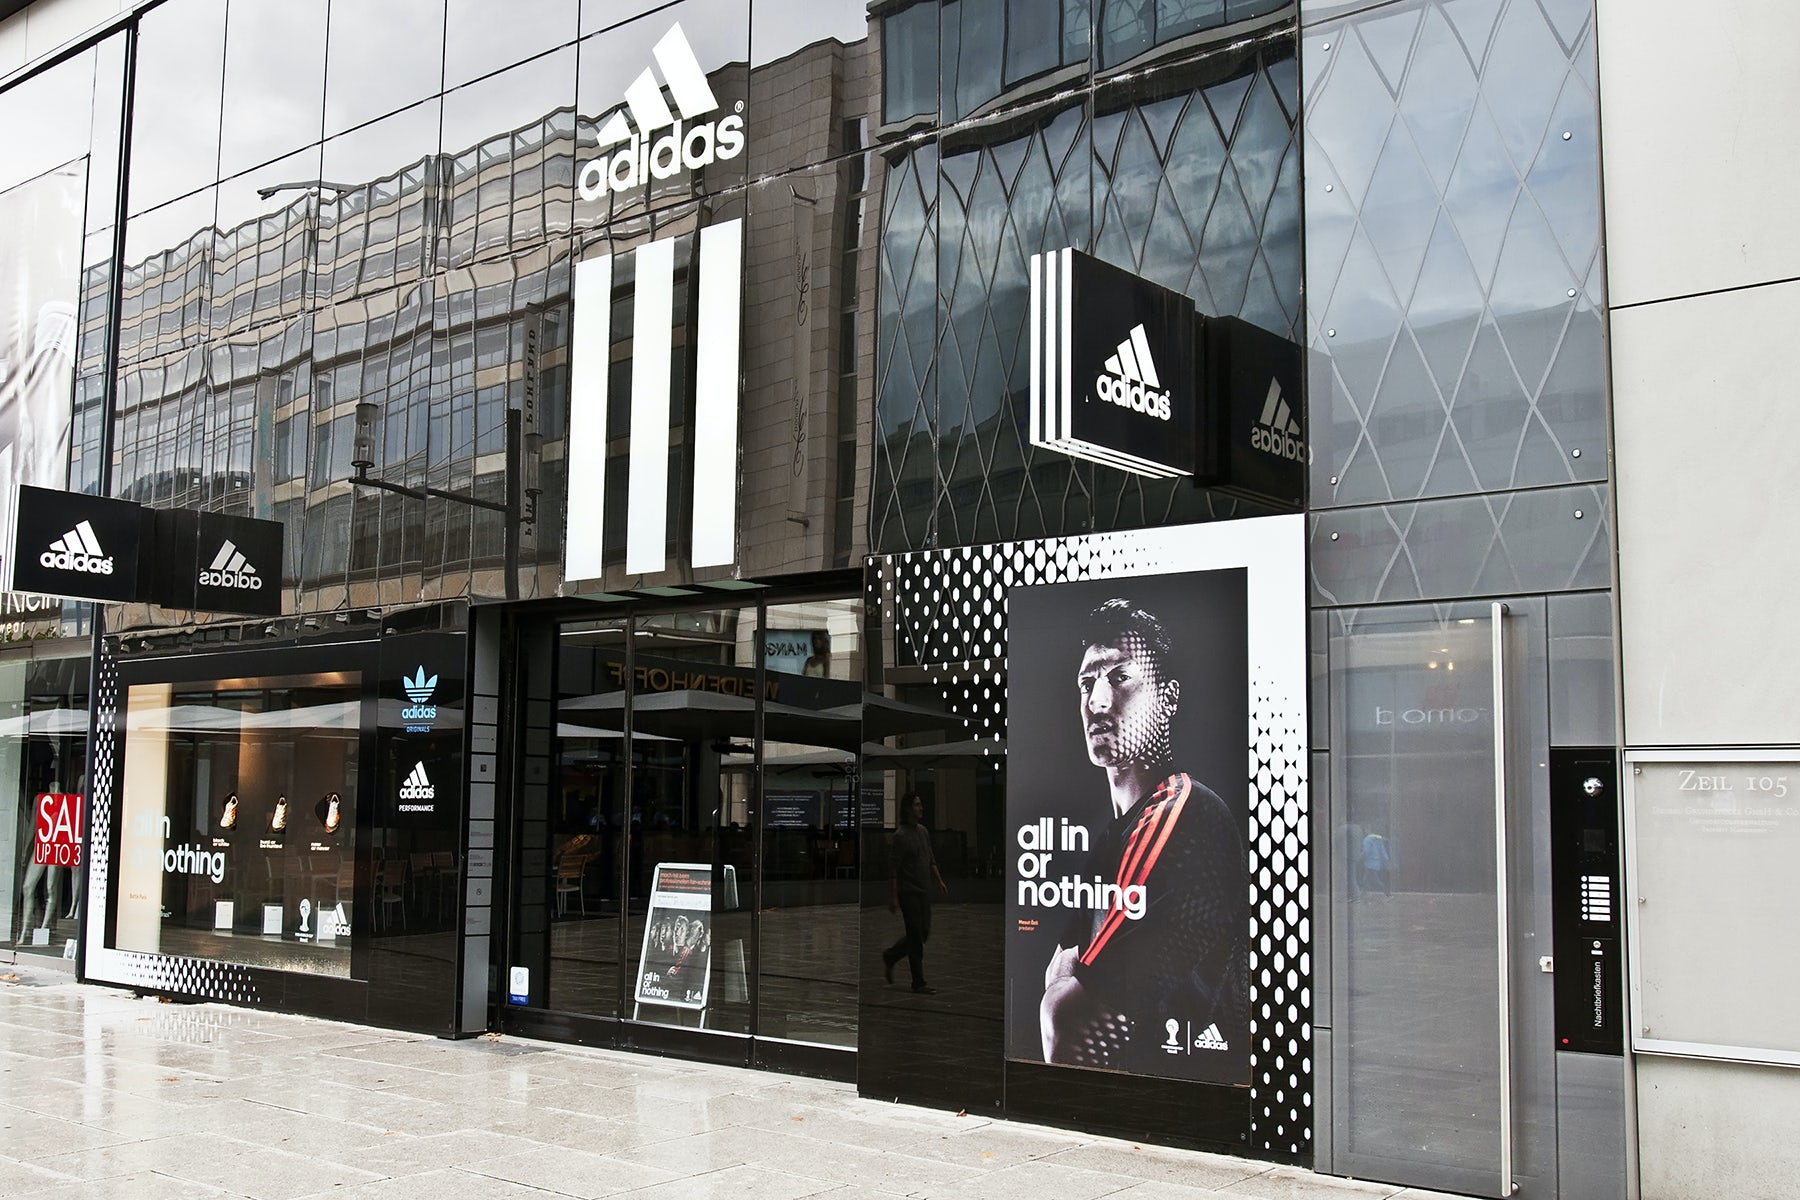 Adidas Sells Diversity. Black Employees Say It Doesn't Practice It.